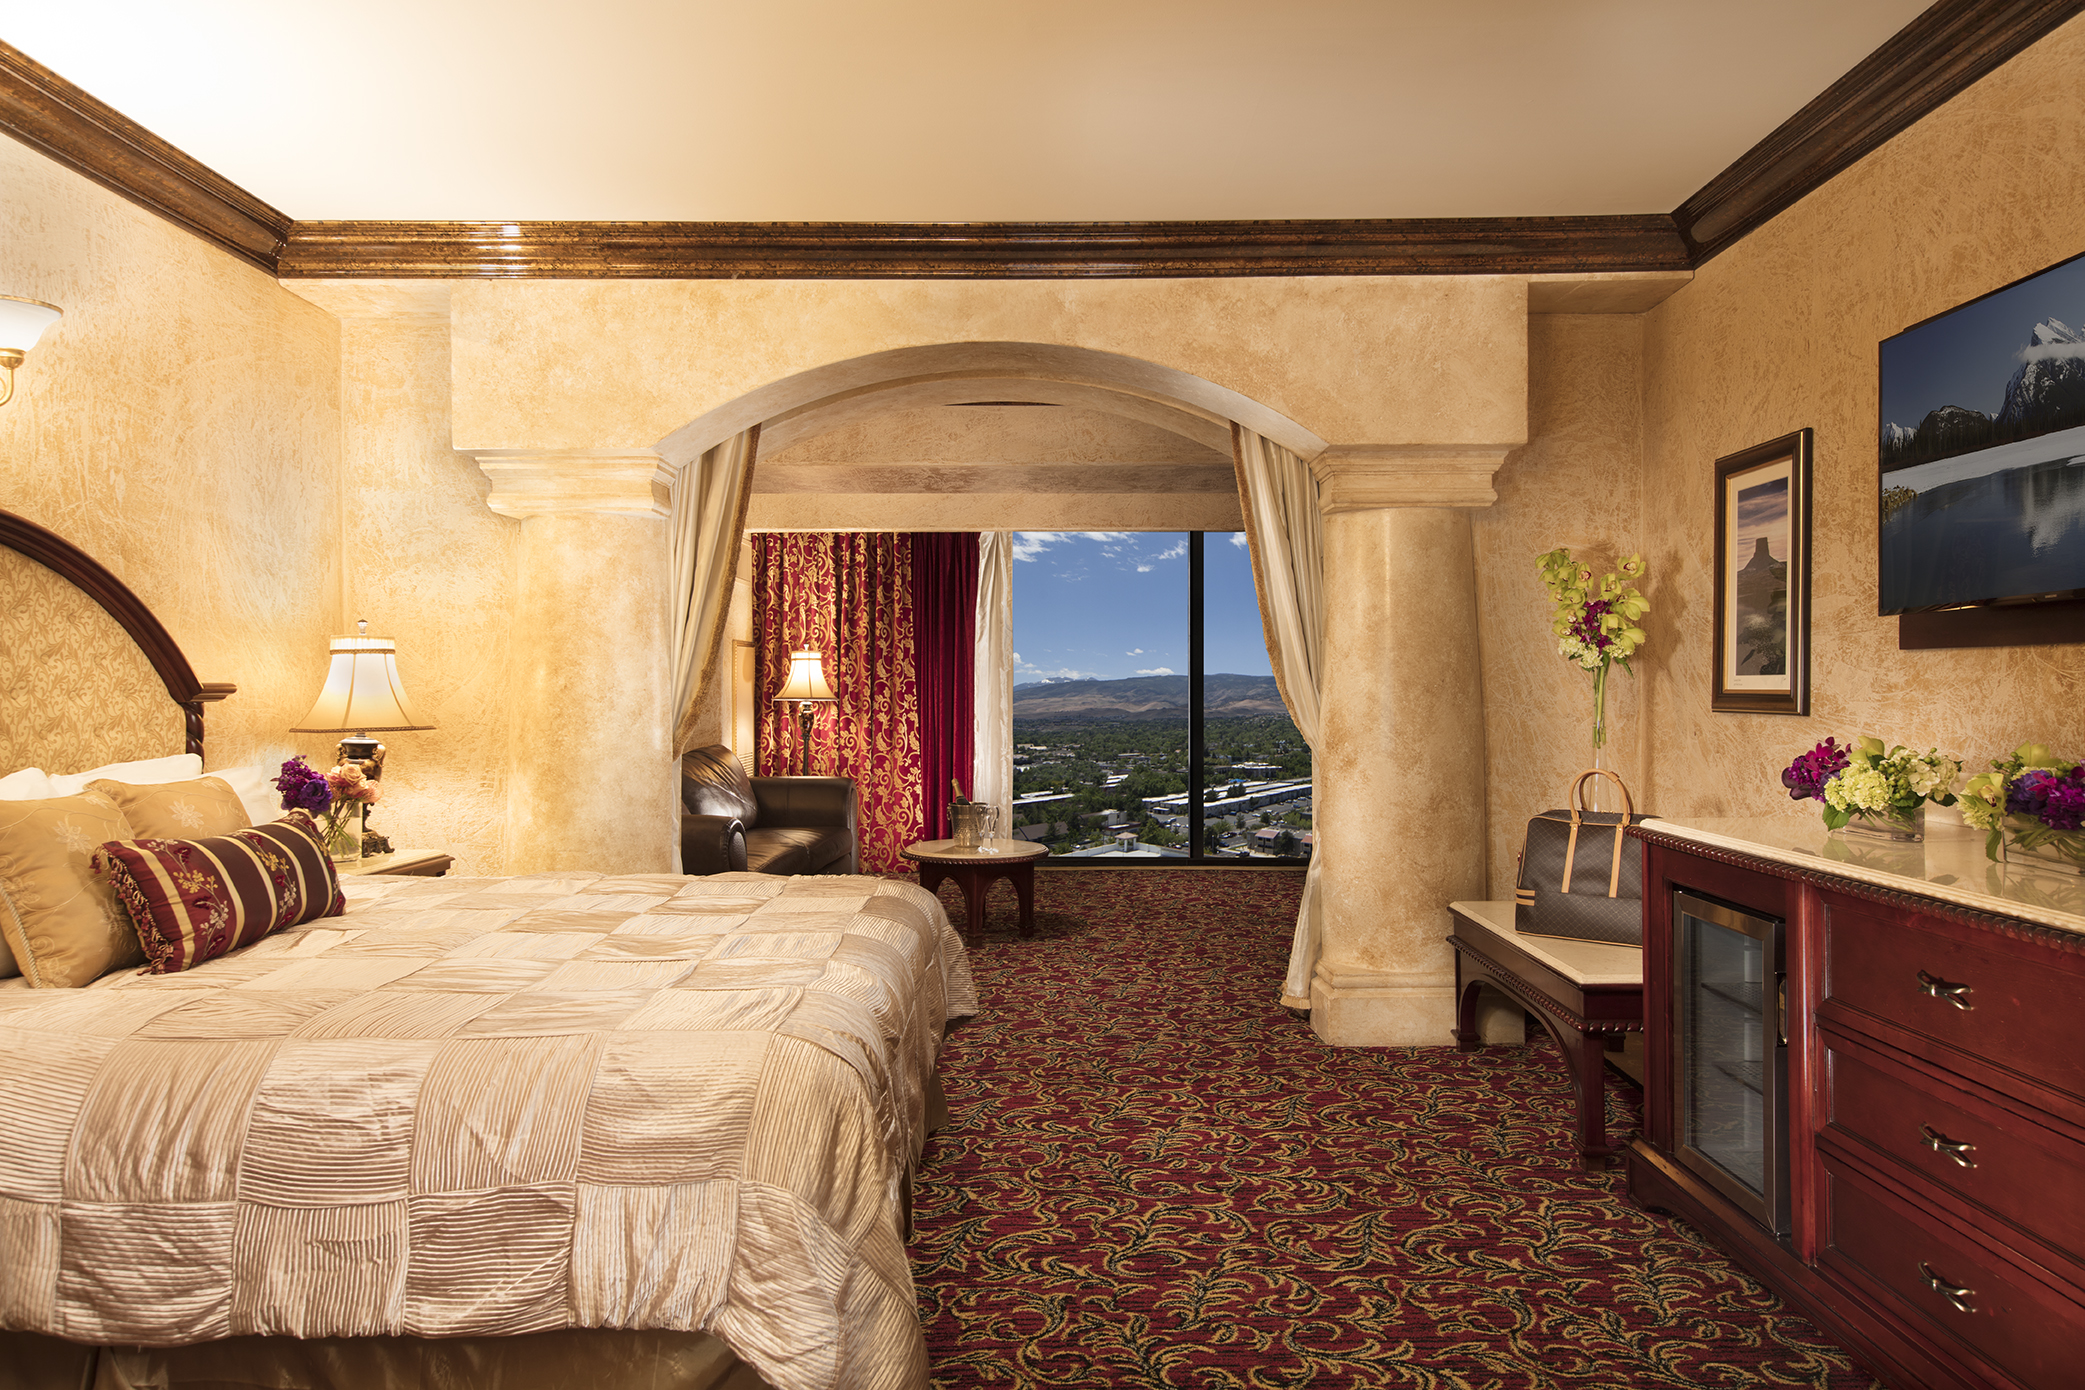 Tuscany Sienna Suite